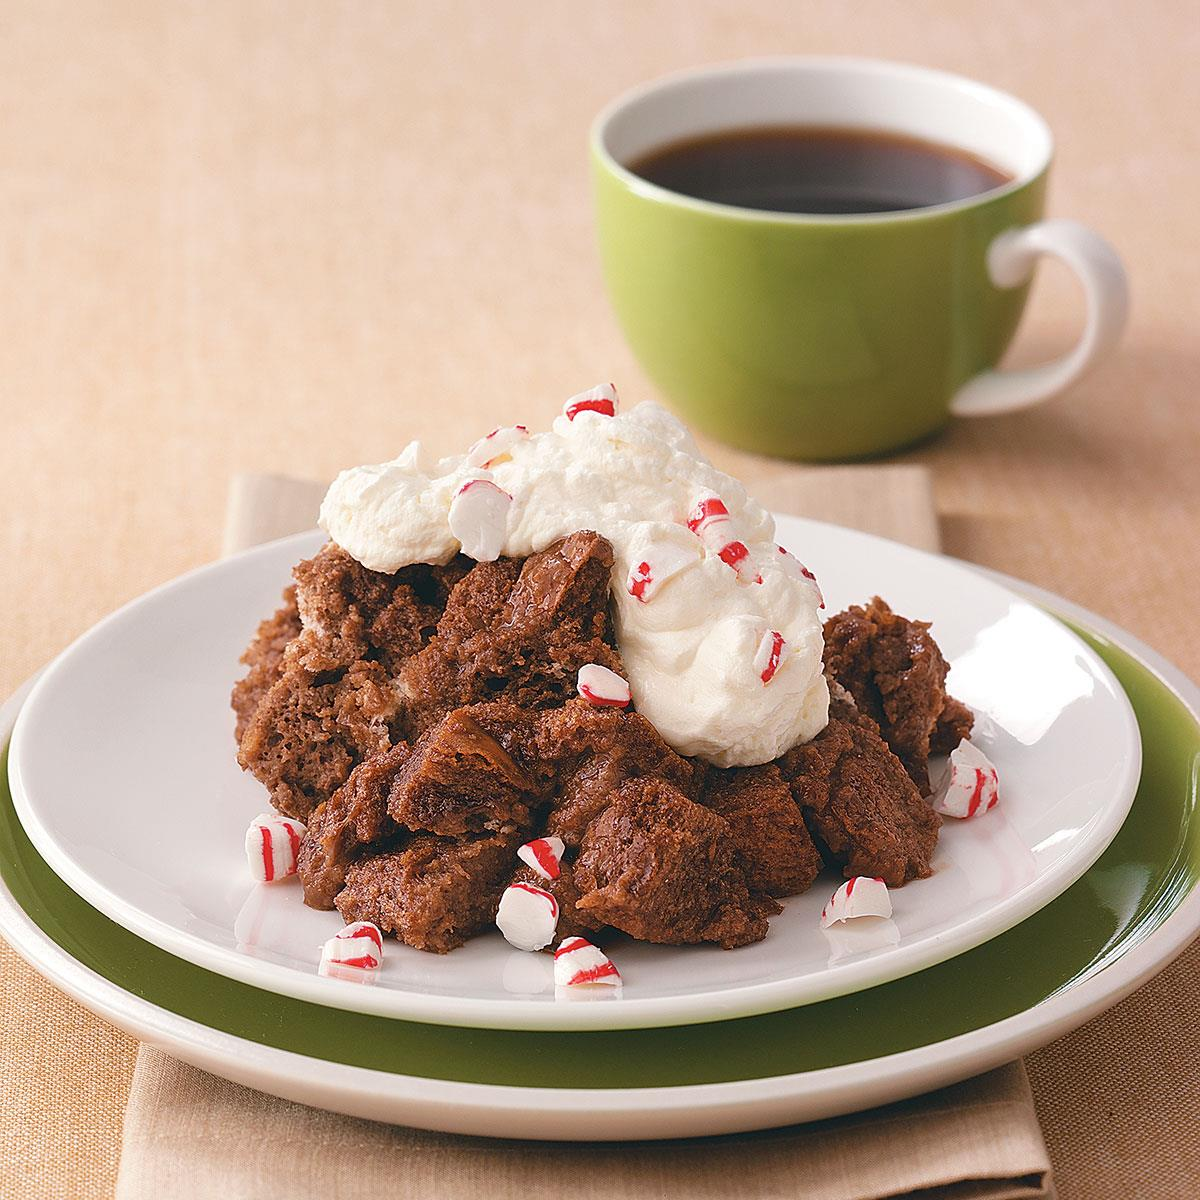 Microwave Chocolate Bread Pudding Recipe How To Make It Taste Of Home